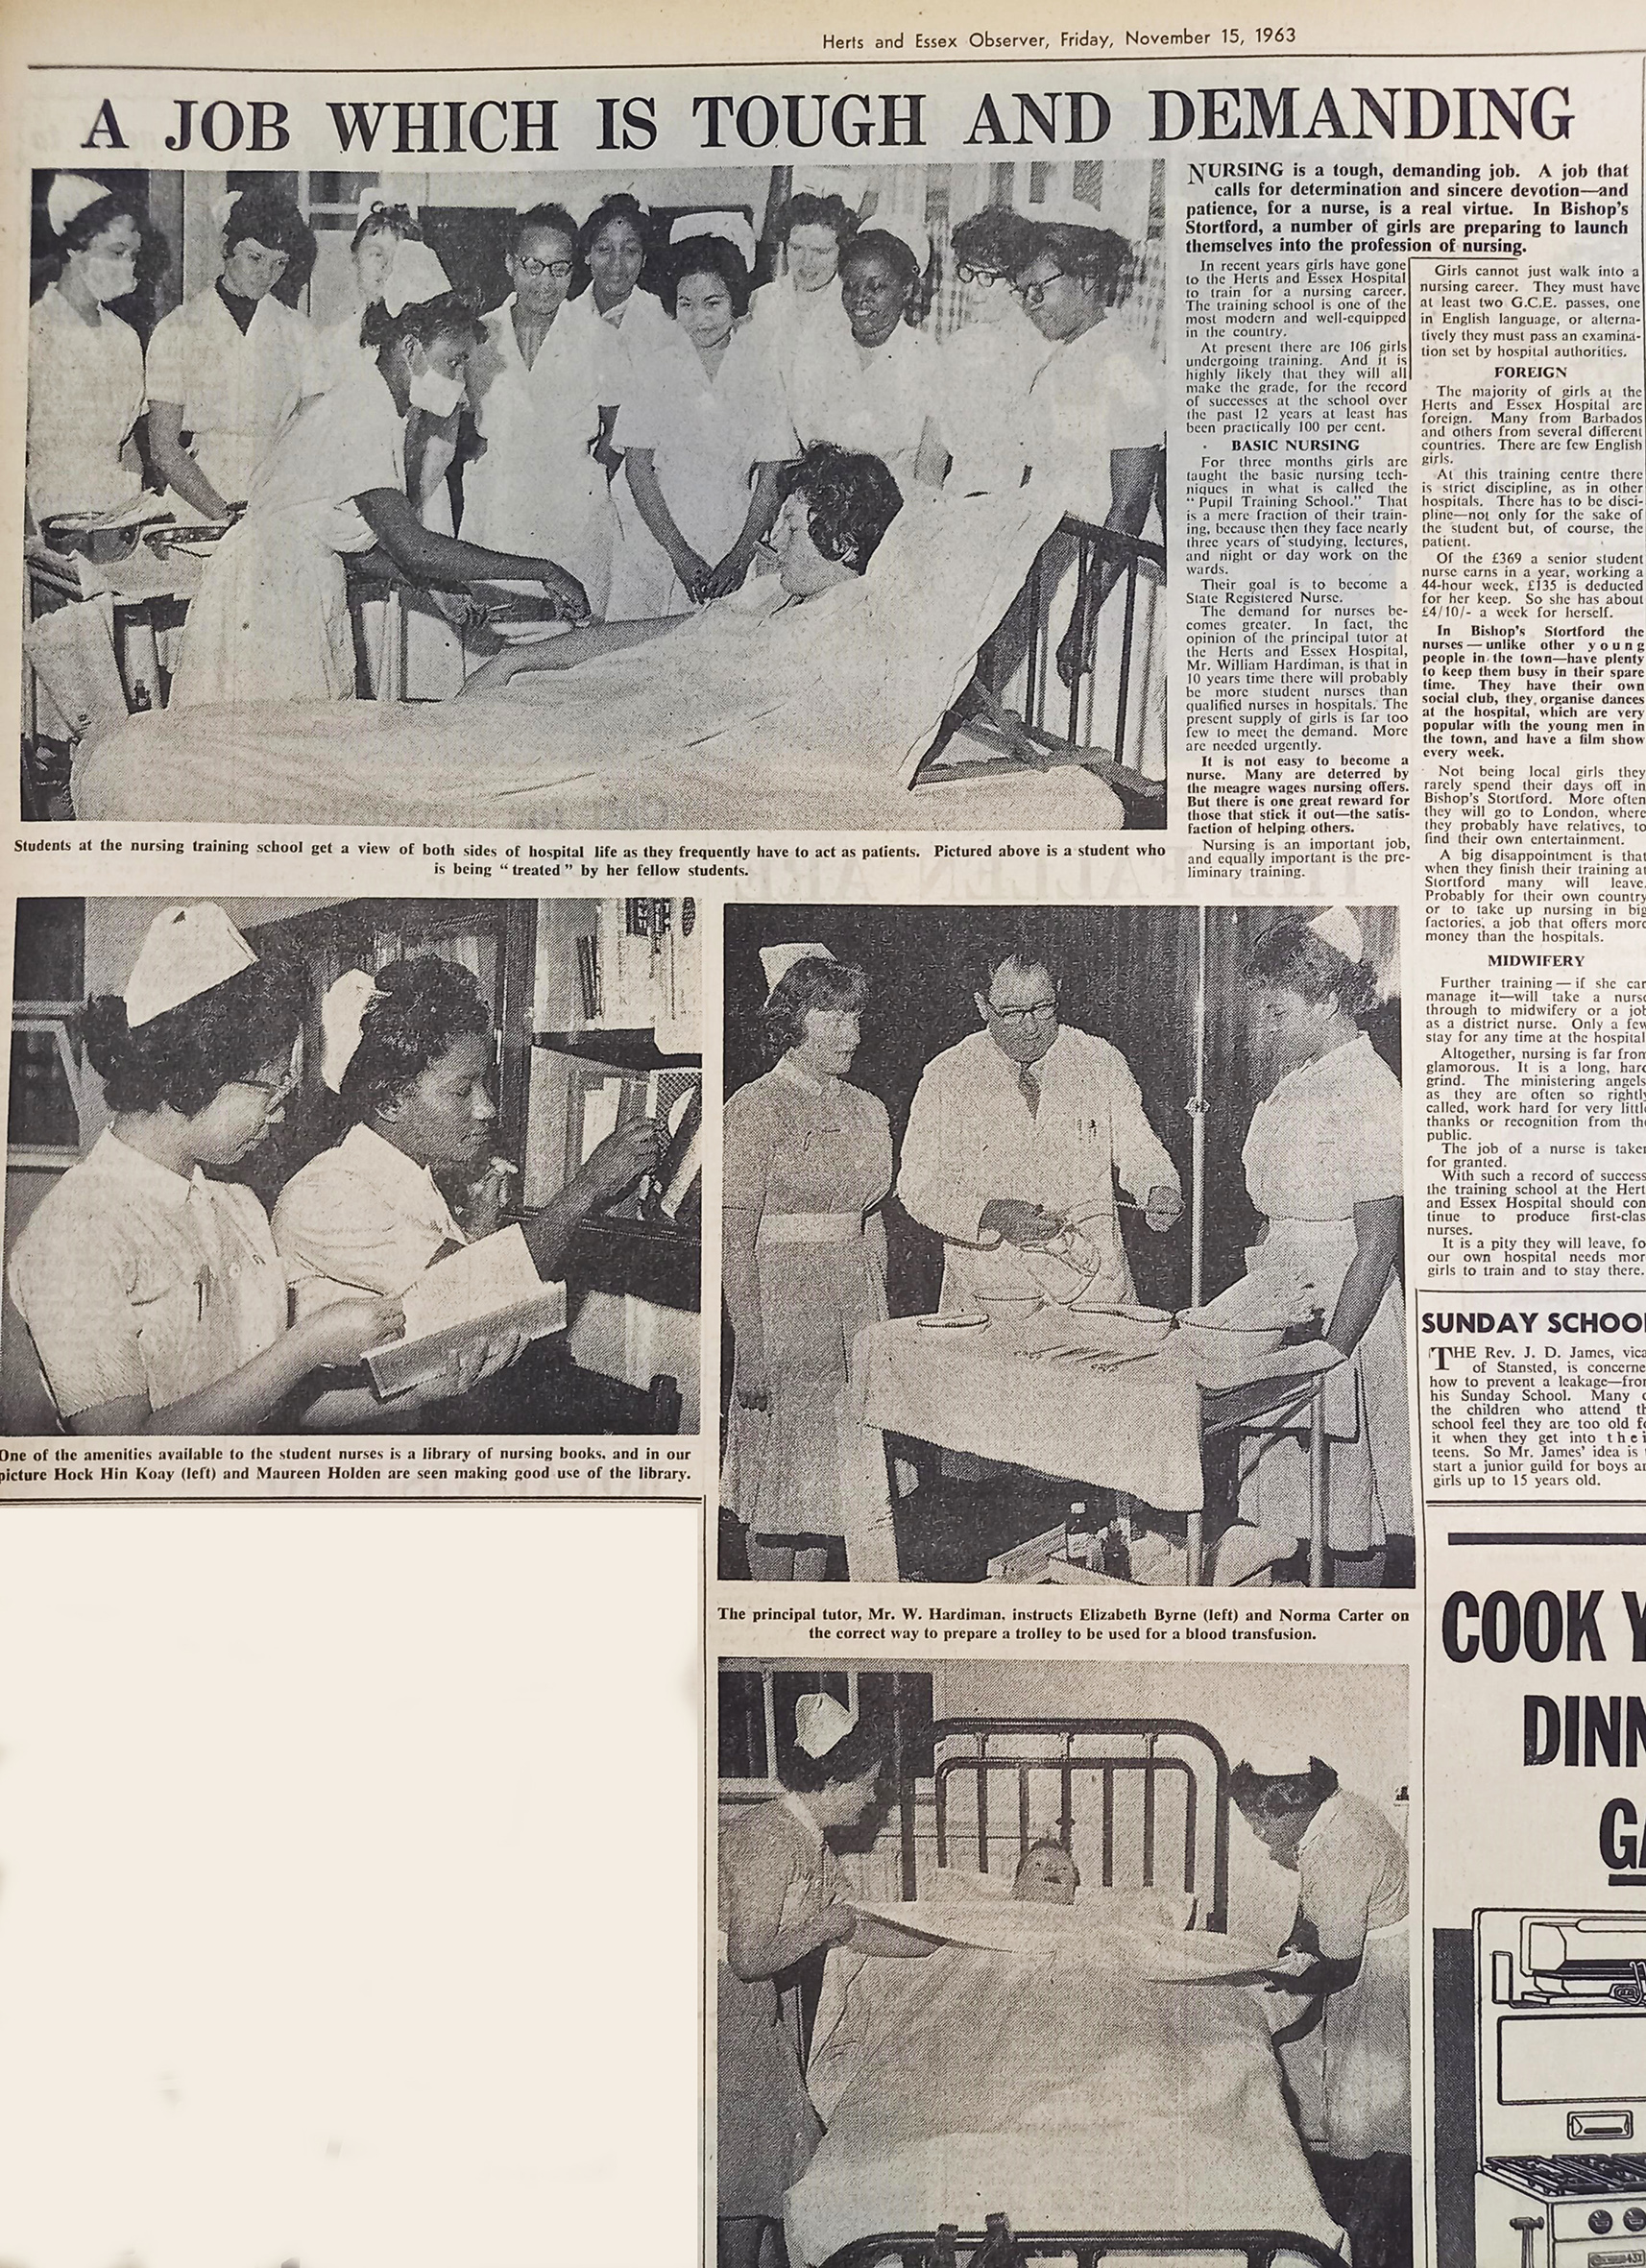 photos of nurses in local newspaper | Herts and Essex Observer, 15 November 1963